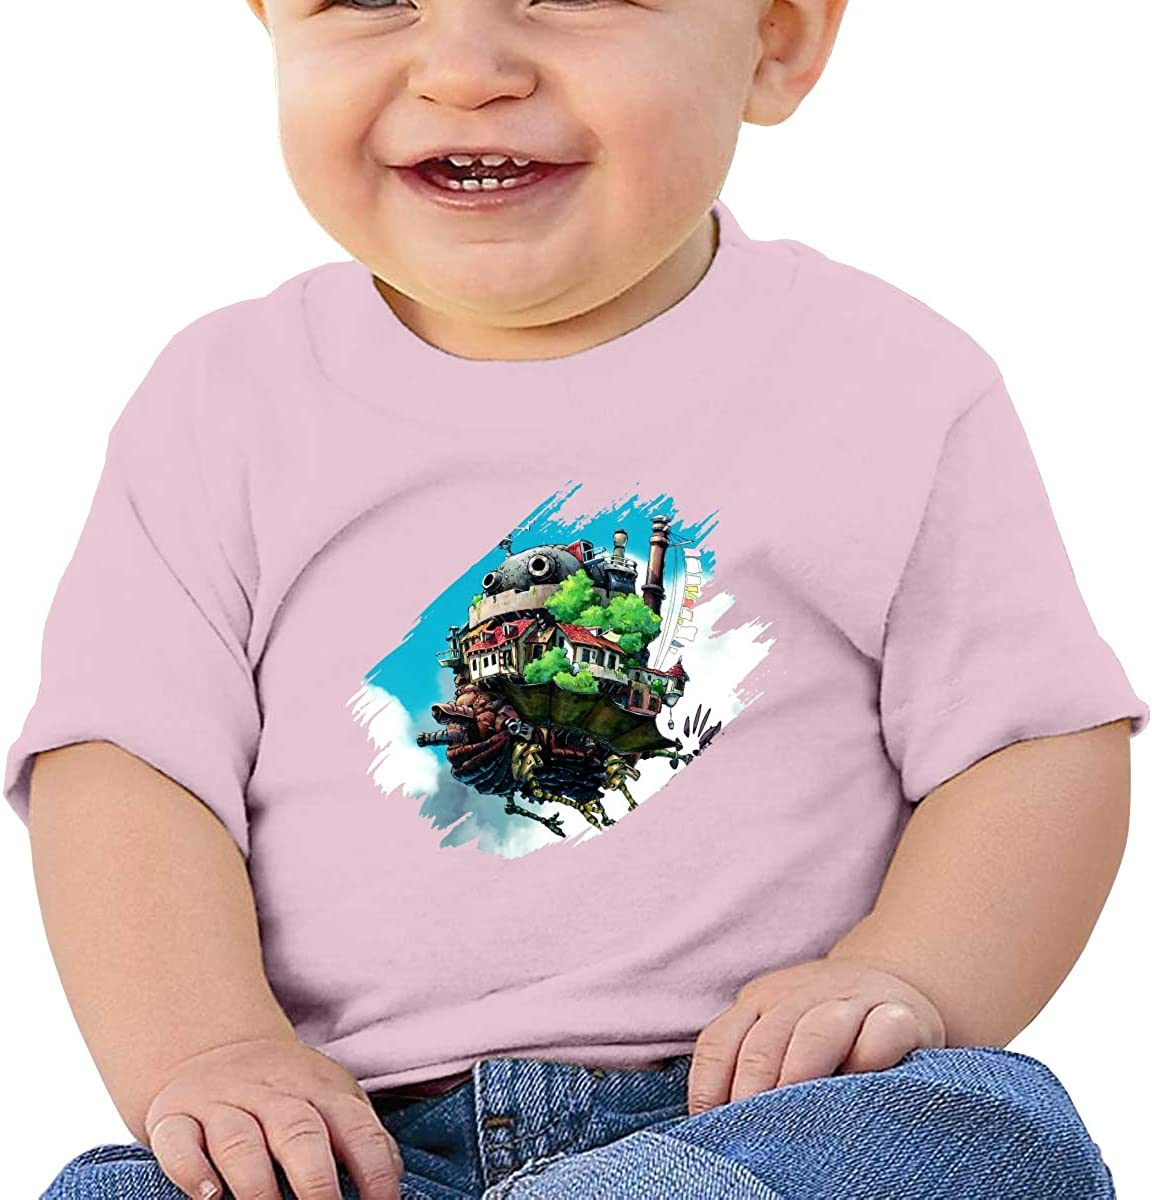 Wokeyia Baby Howls Moving Castle Poster Black Tshirts Skin-Friendly Tshirts for Baby Girl